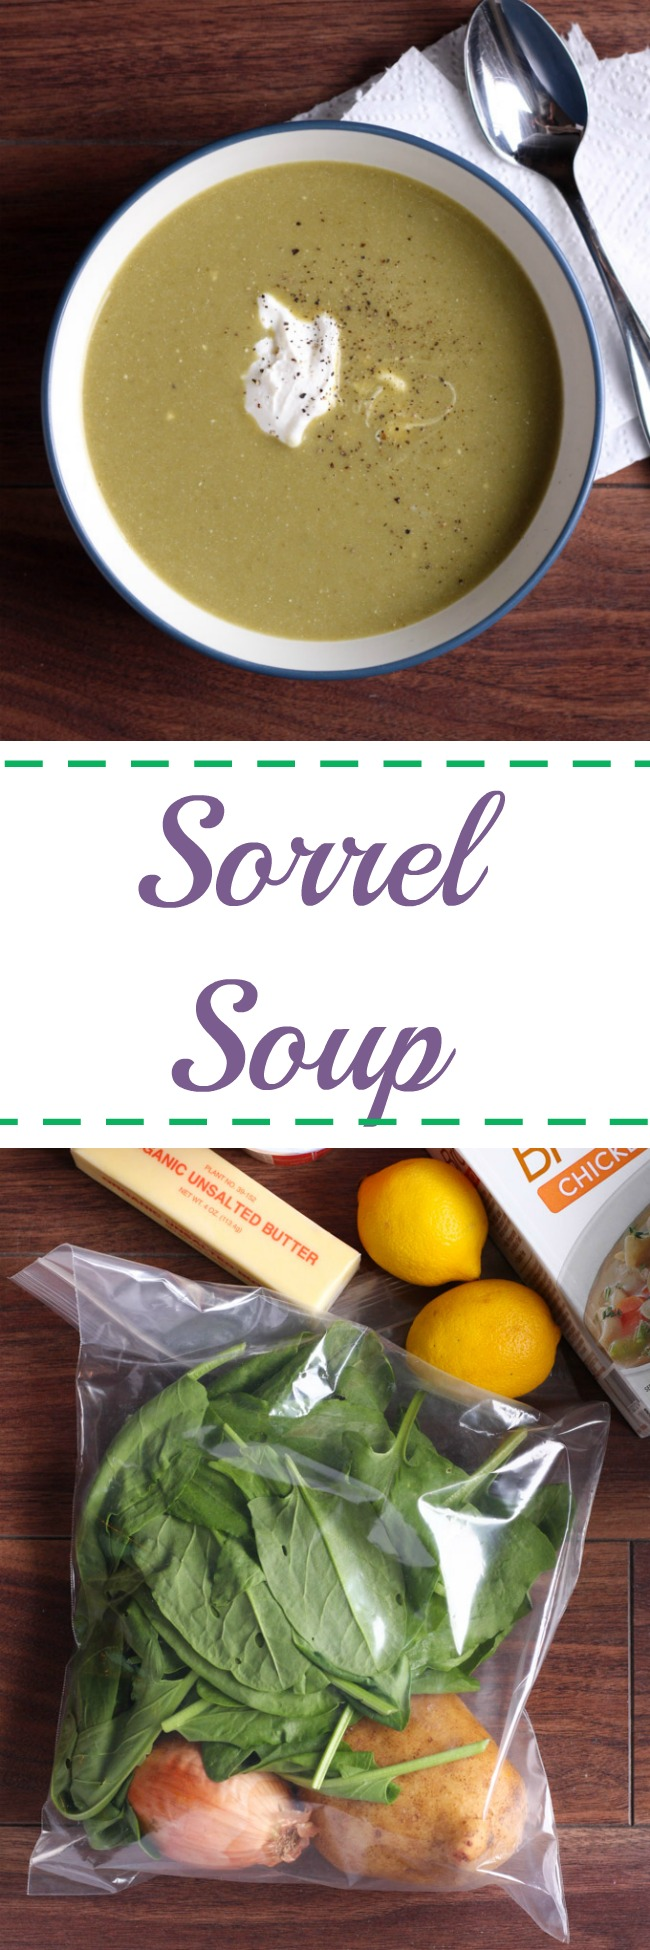 Sorrel soup is tart, lemony, and delicious. This soup is tasty served hot or cold, it's light, and simple to make! www.cookingismessy.com